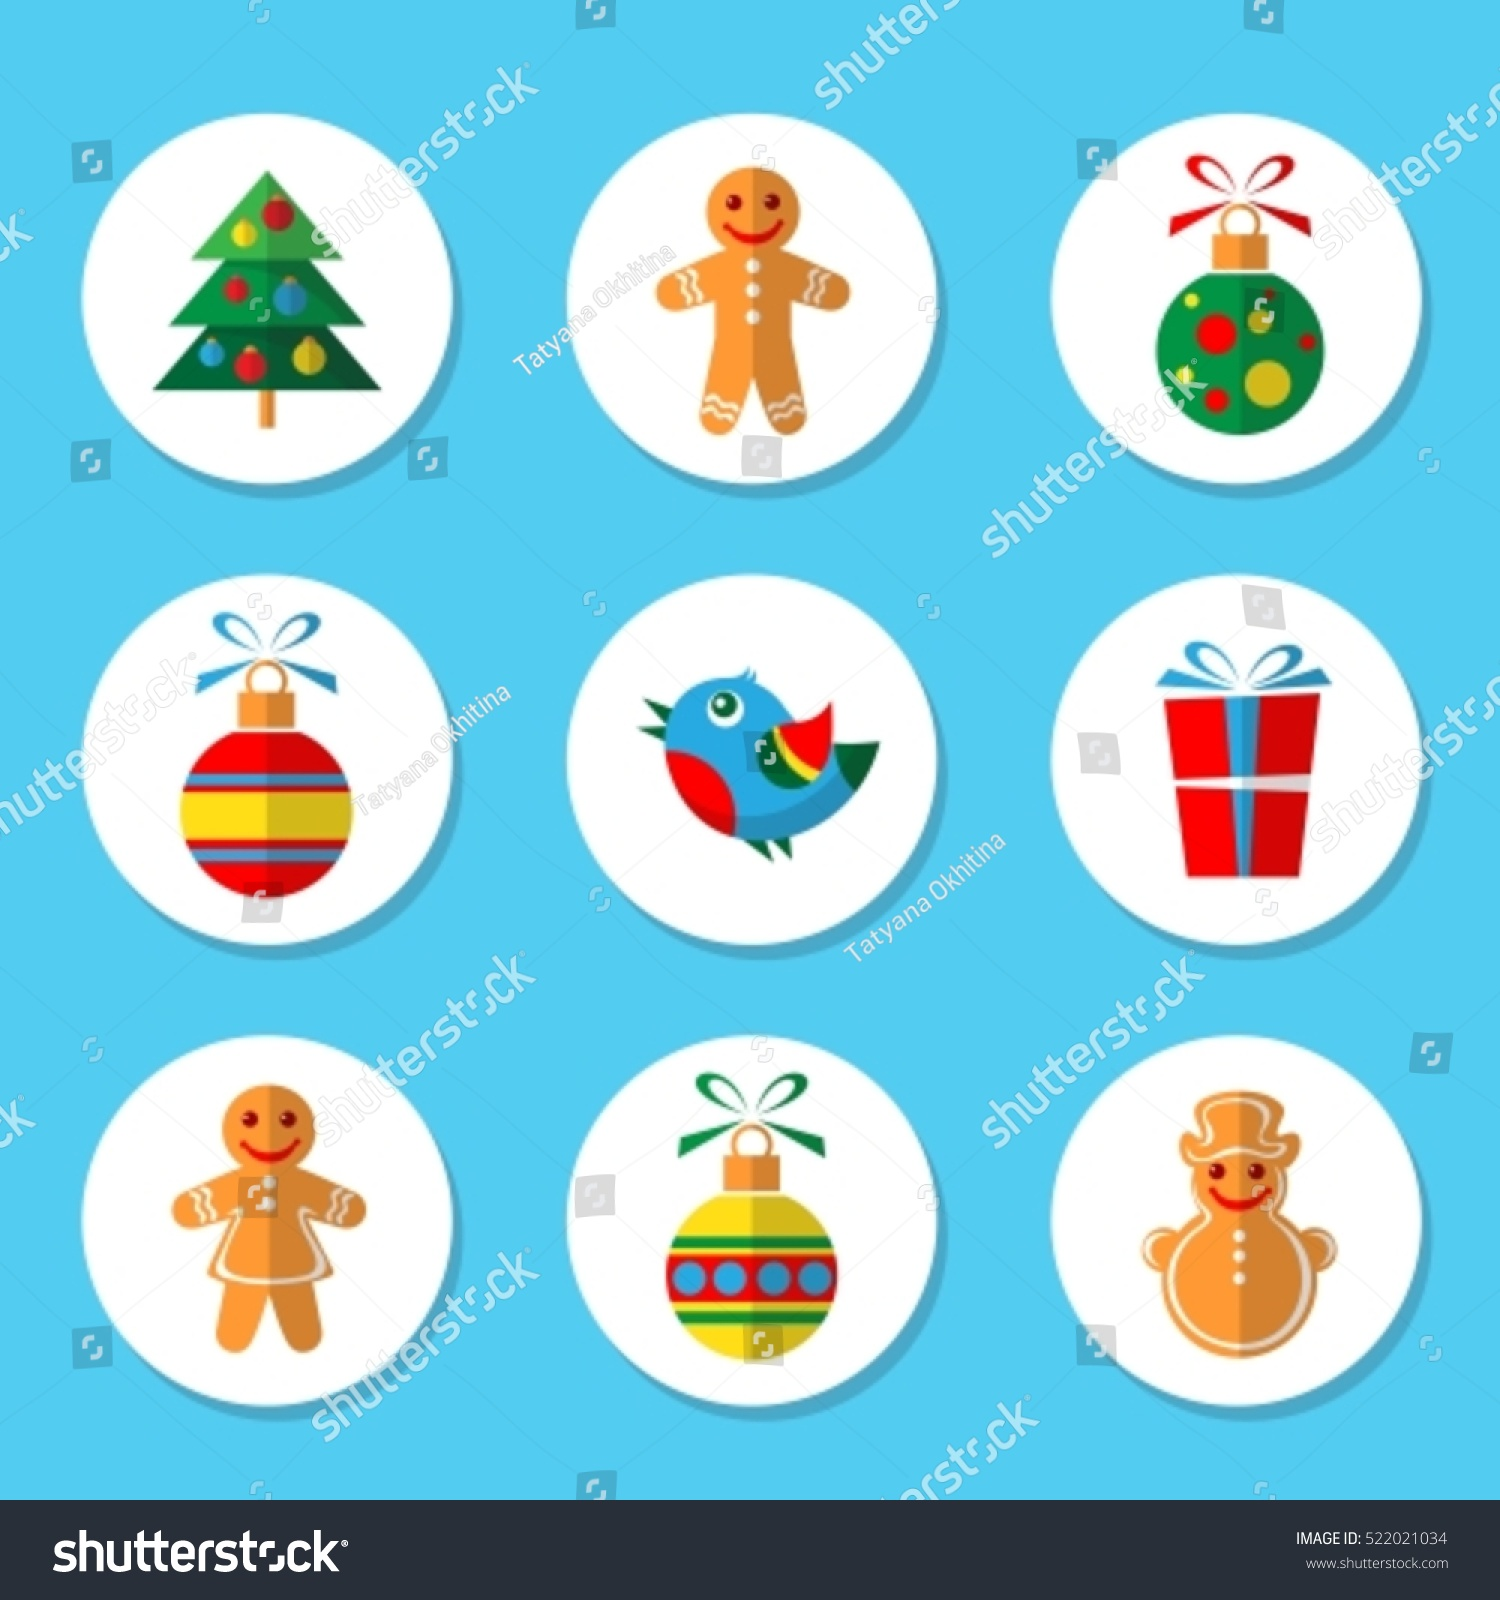 Christmas symbols set isolated on blue stock vector 522021034 christmas symbols set isolated on blue background design elements for greeting cards and flyers biocorpaavc